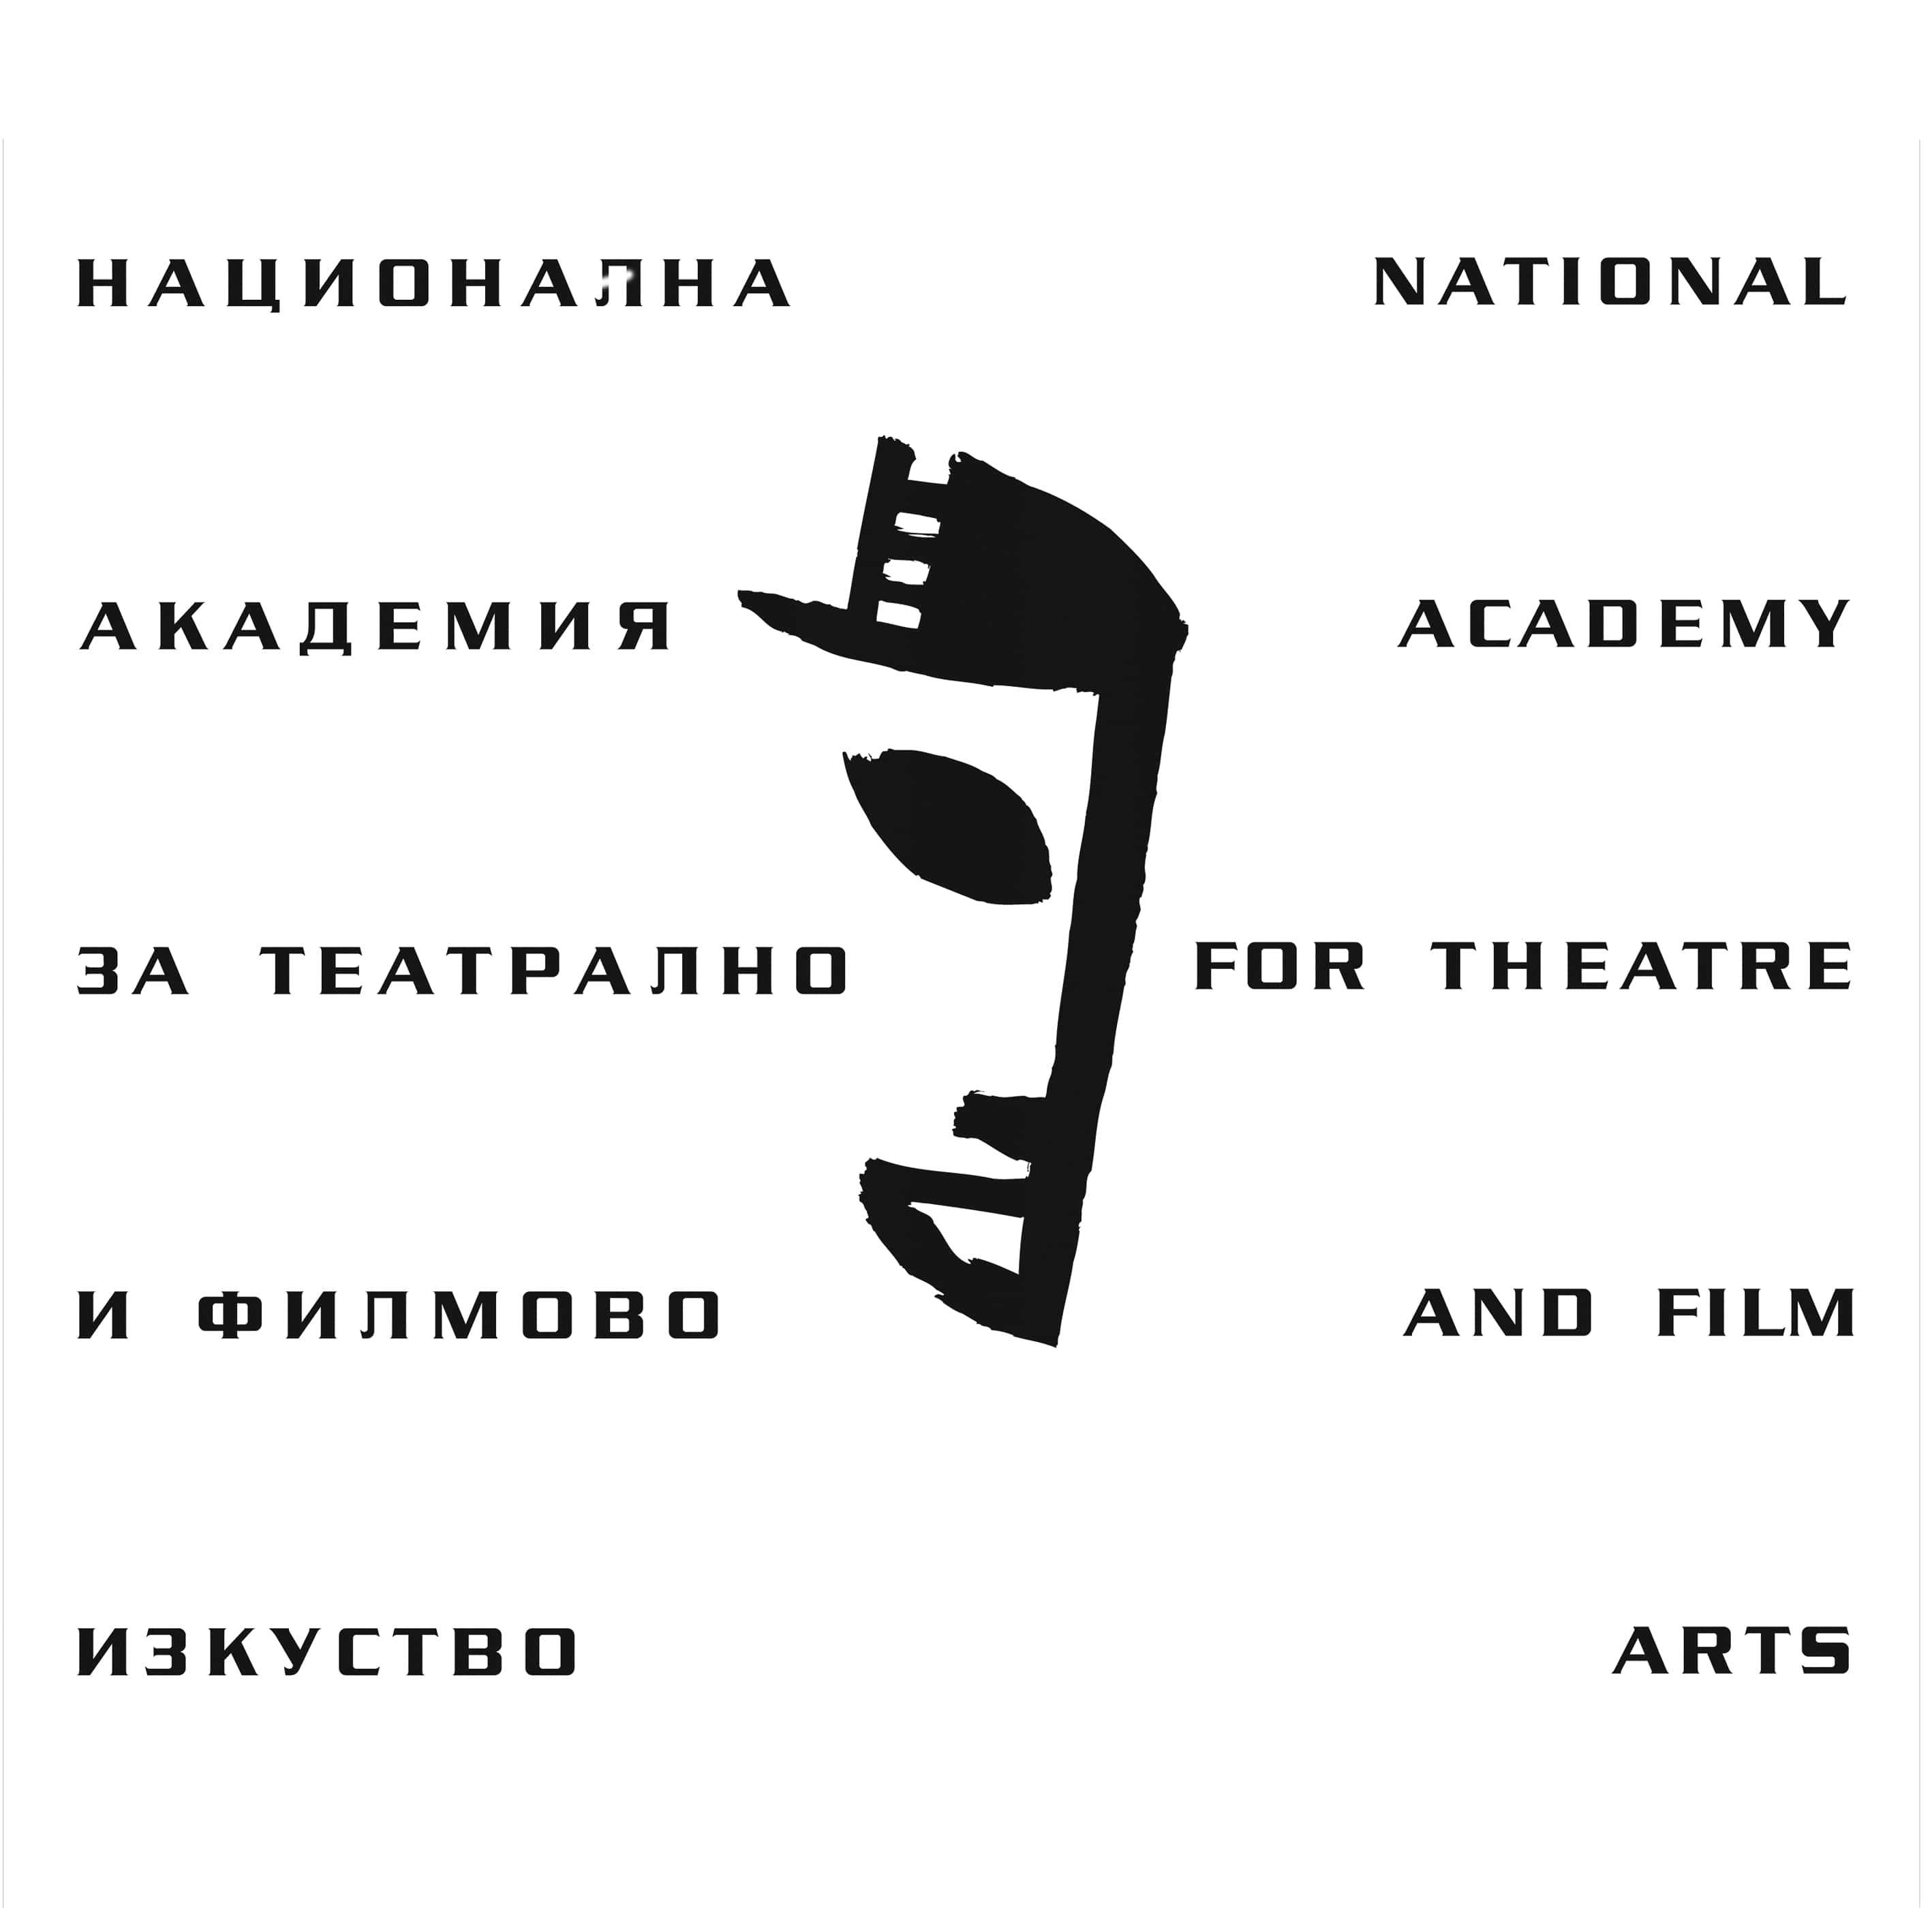 Trade Unions - Krastyo Sarafov National Academy for Theatre and Film Arts